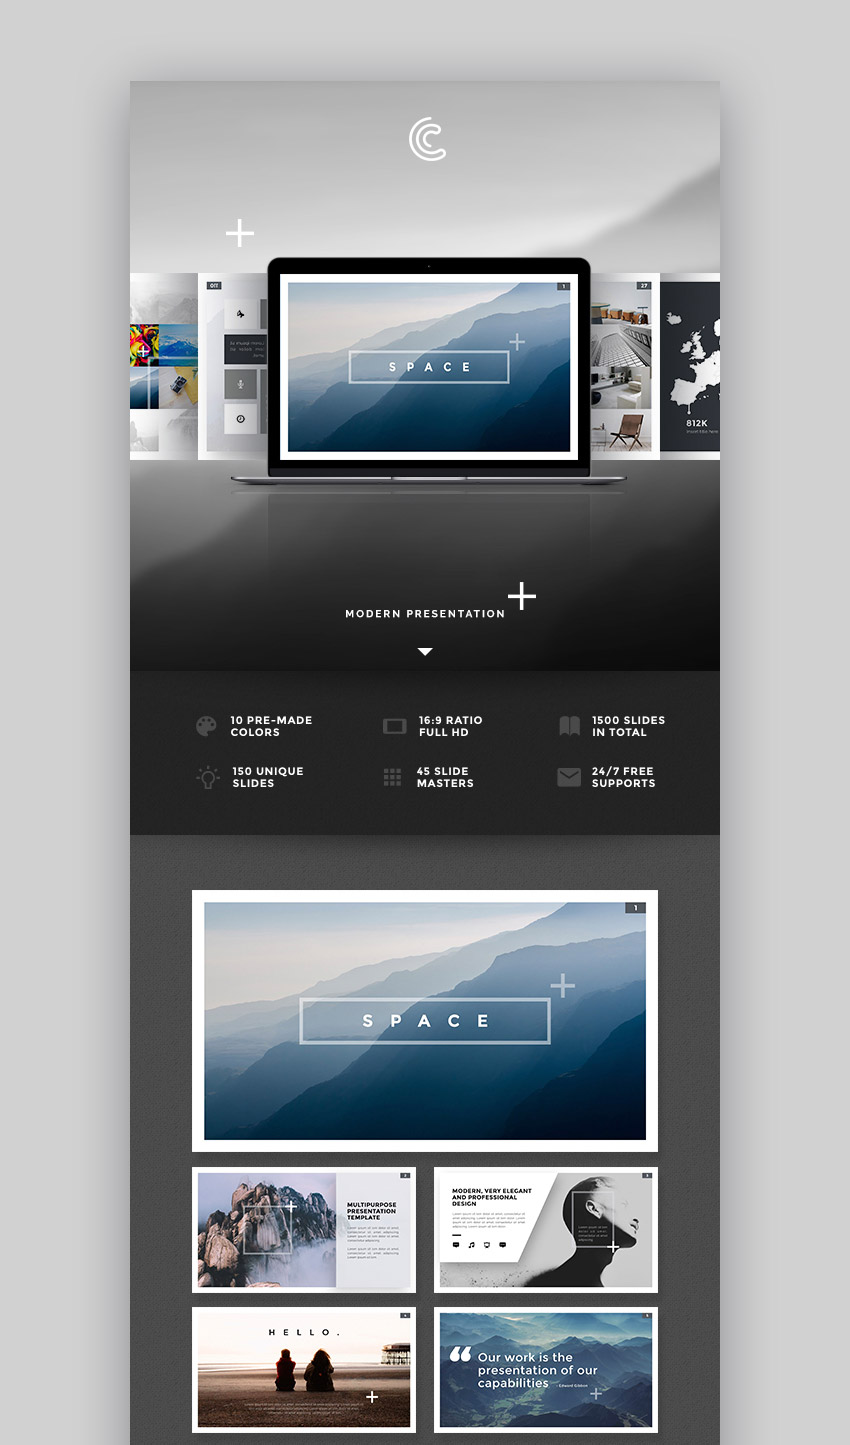 17 mac keynote themes made to customize quickly 2017 space custom creative mac keynote theme design toneelgroepblik